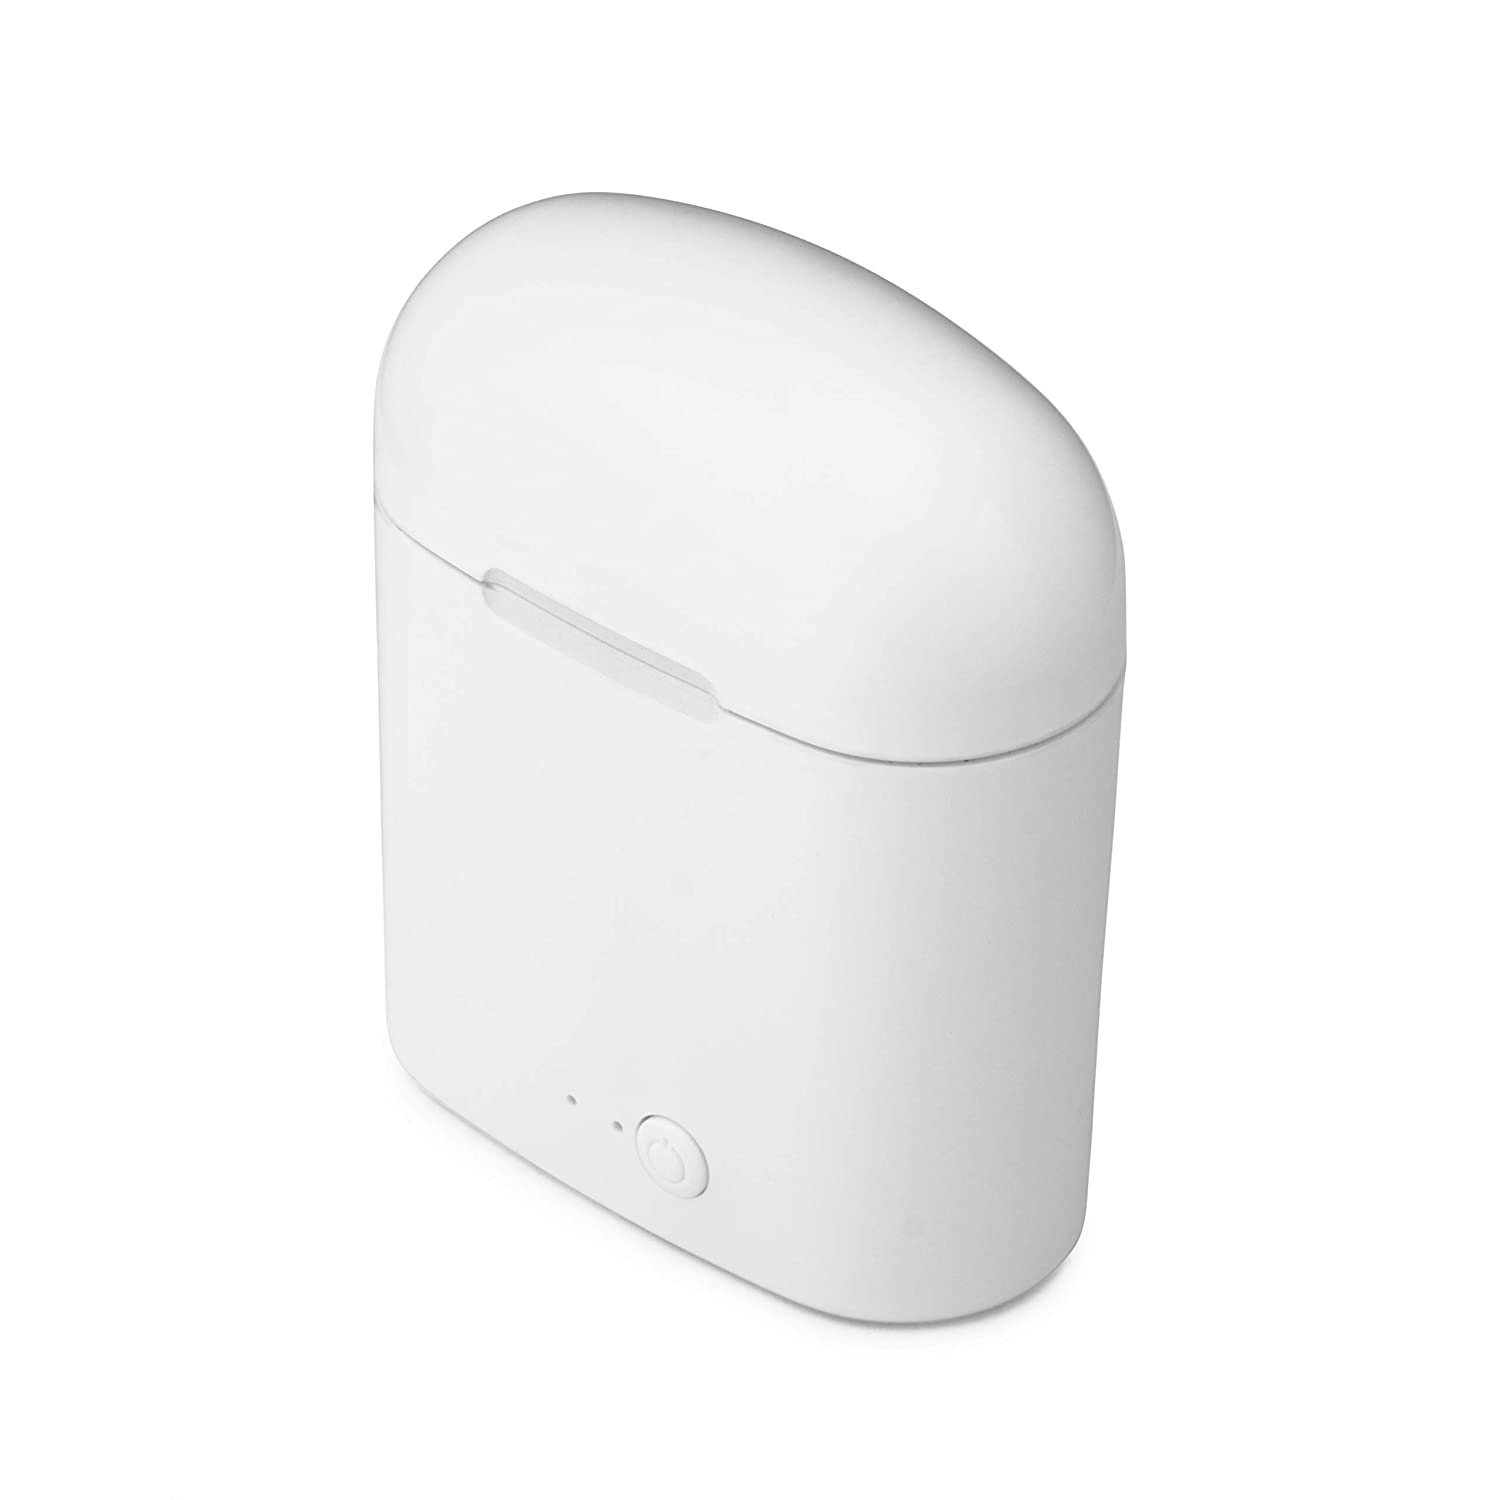 Unotec Twin-in Écouteurs Bluetooth Blanc: